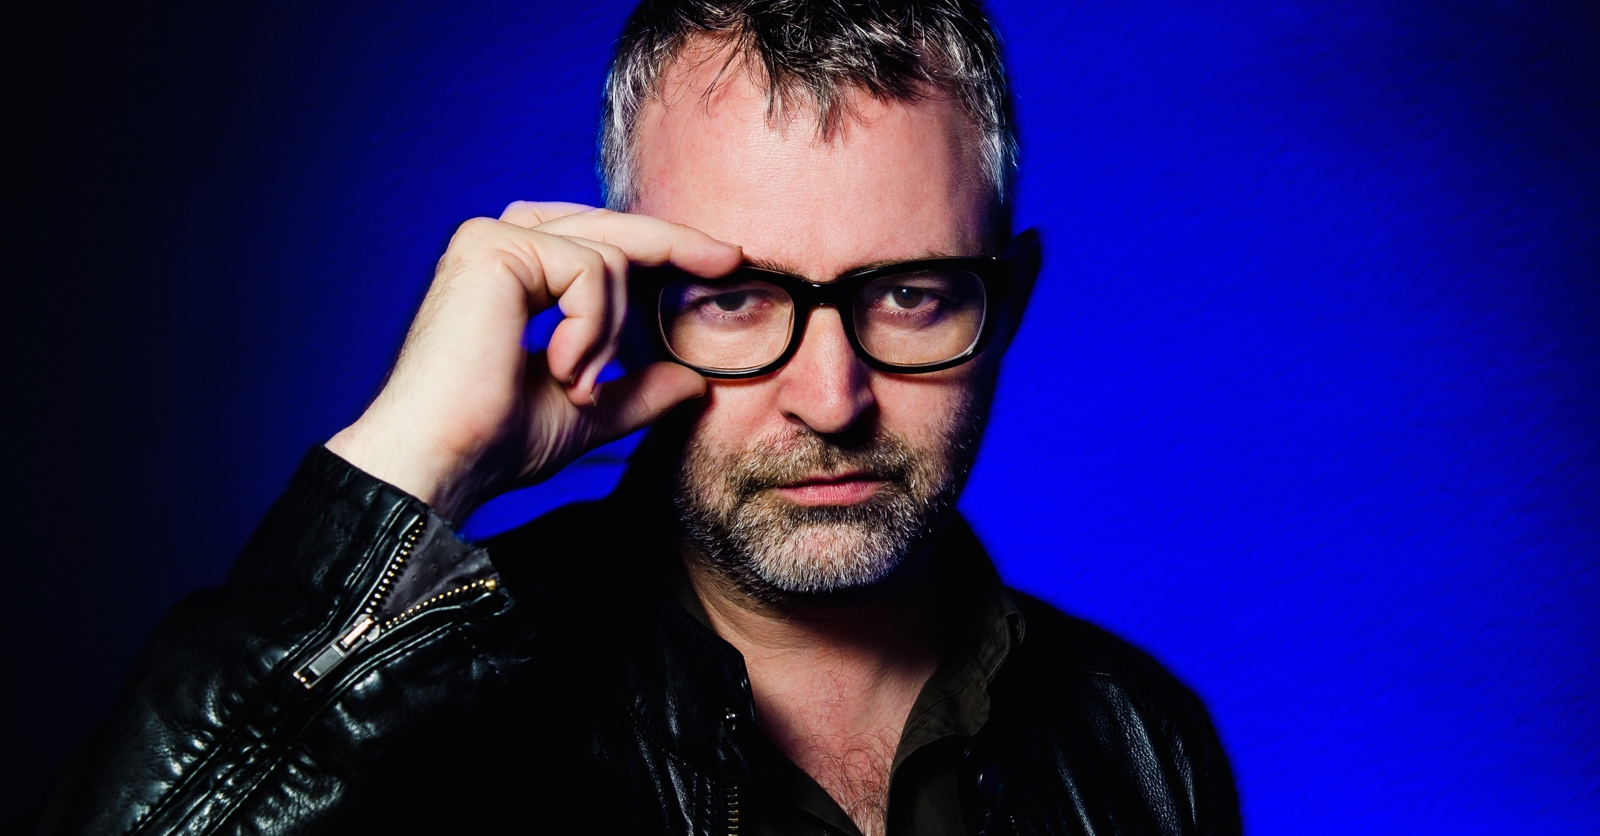 Q&A on startups with TechCrunch's Mike Butcher